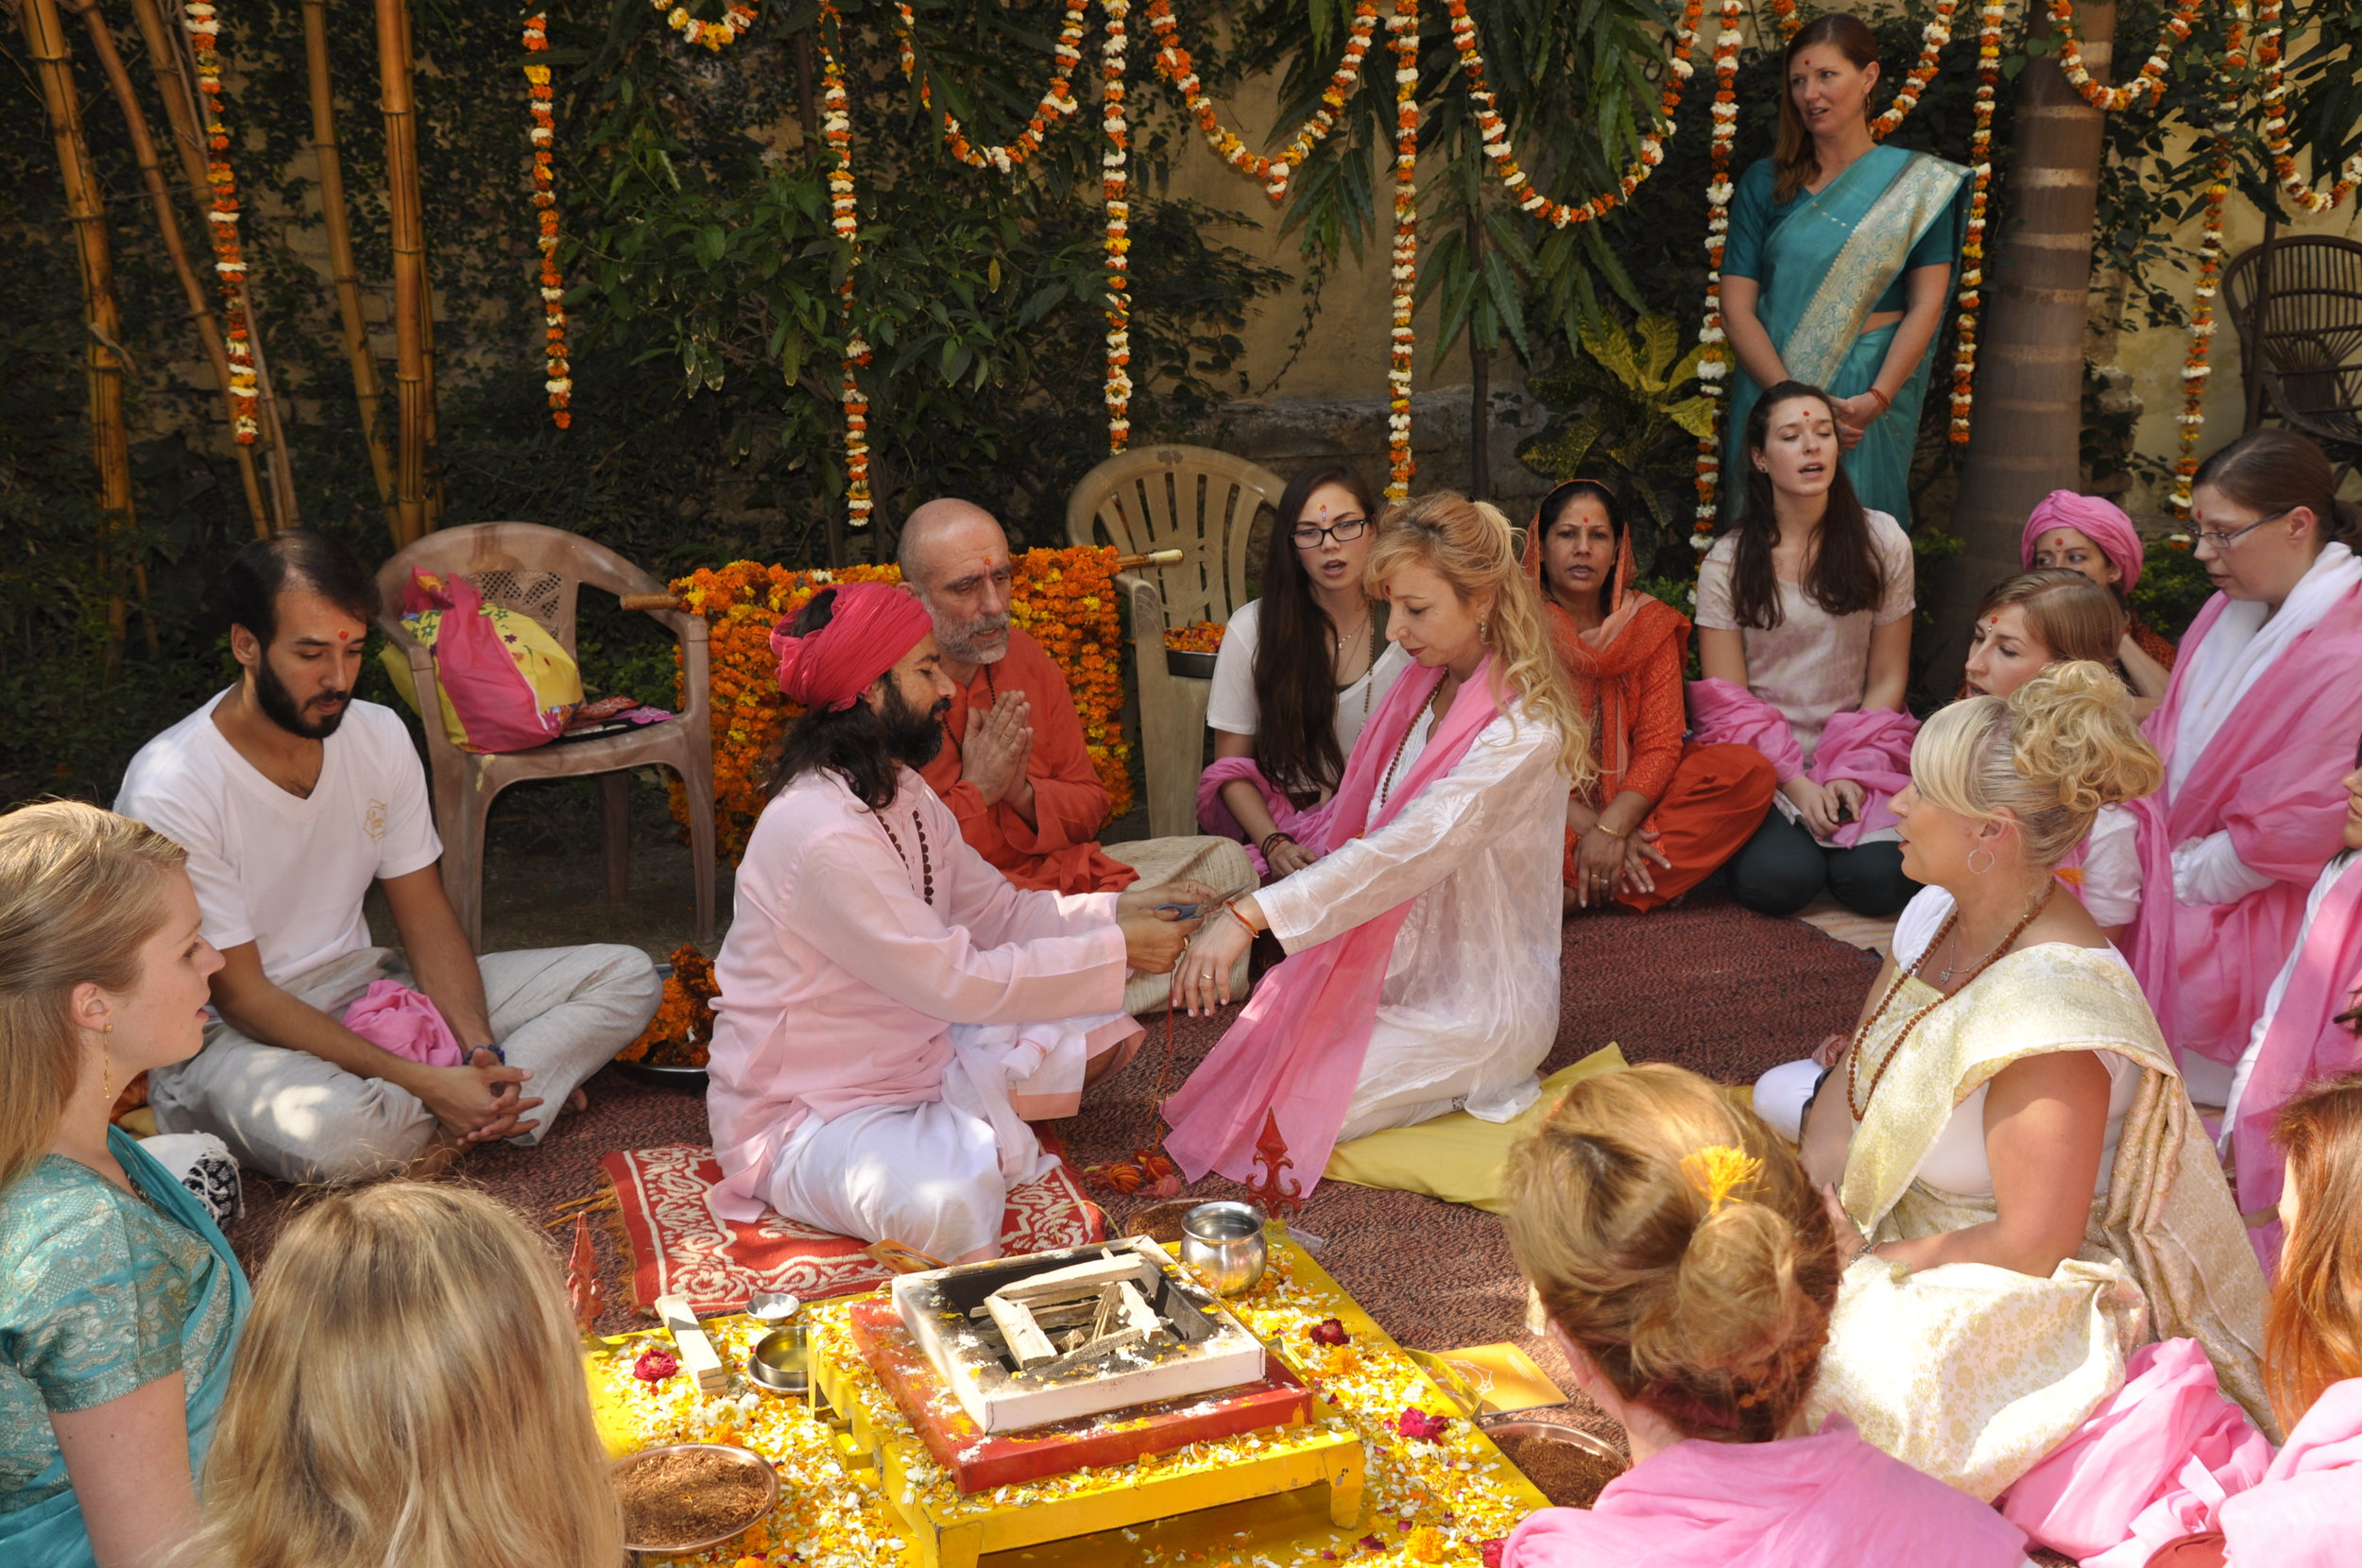 Graduation ceremony with Yogrishi Vishvketu, founder of Akhanda Yoga and Yog Sundari, Rishikesh, India.